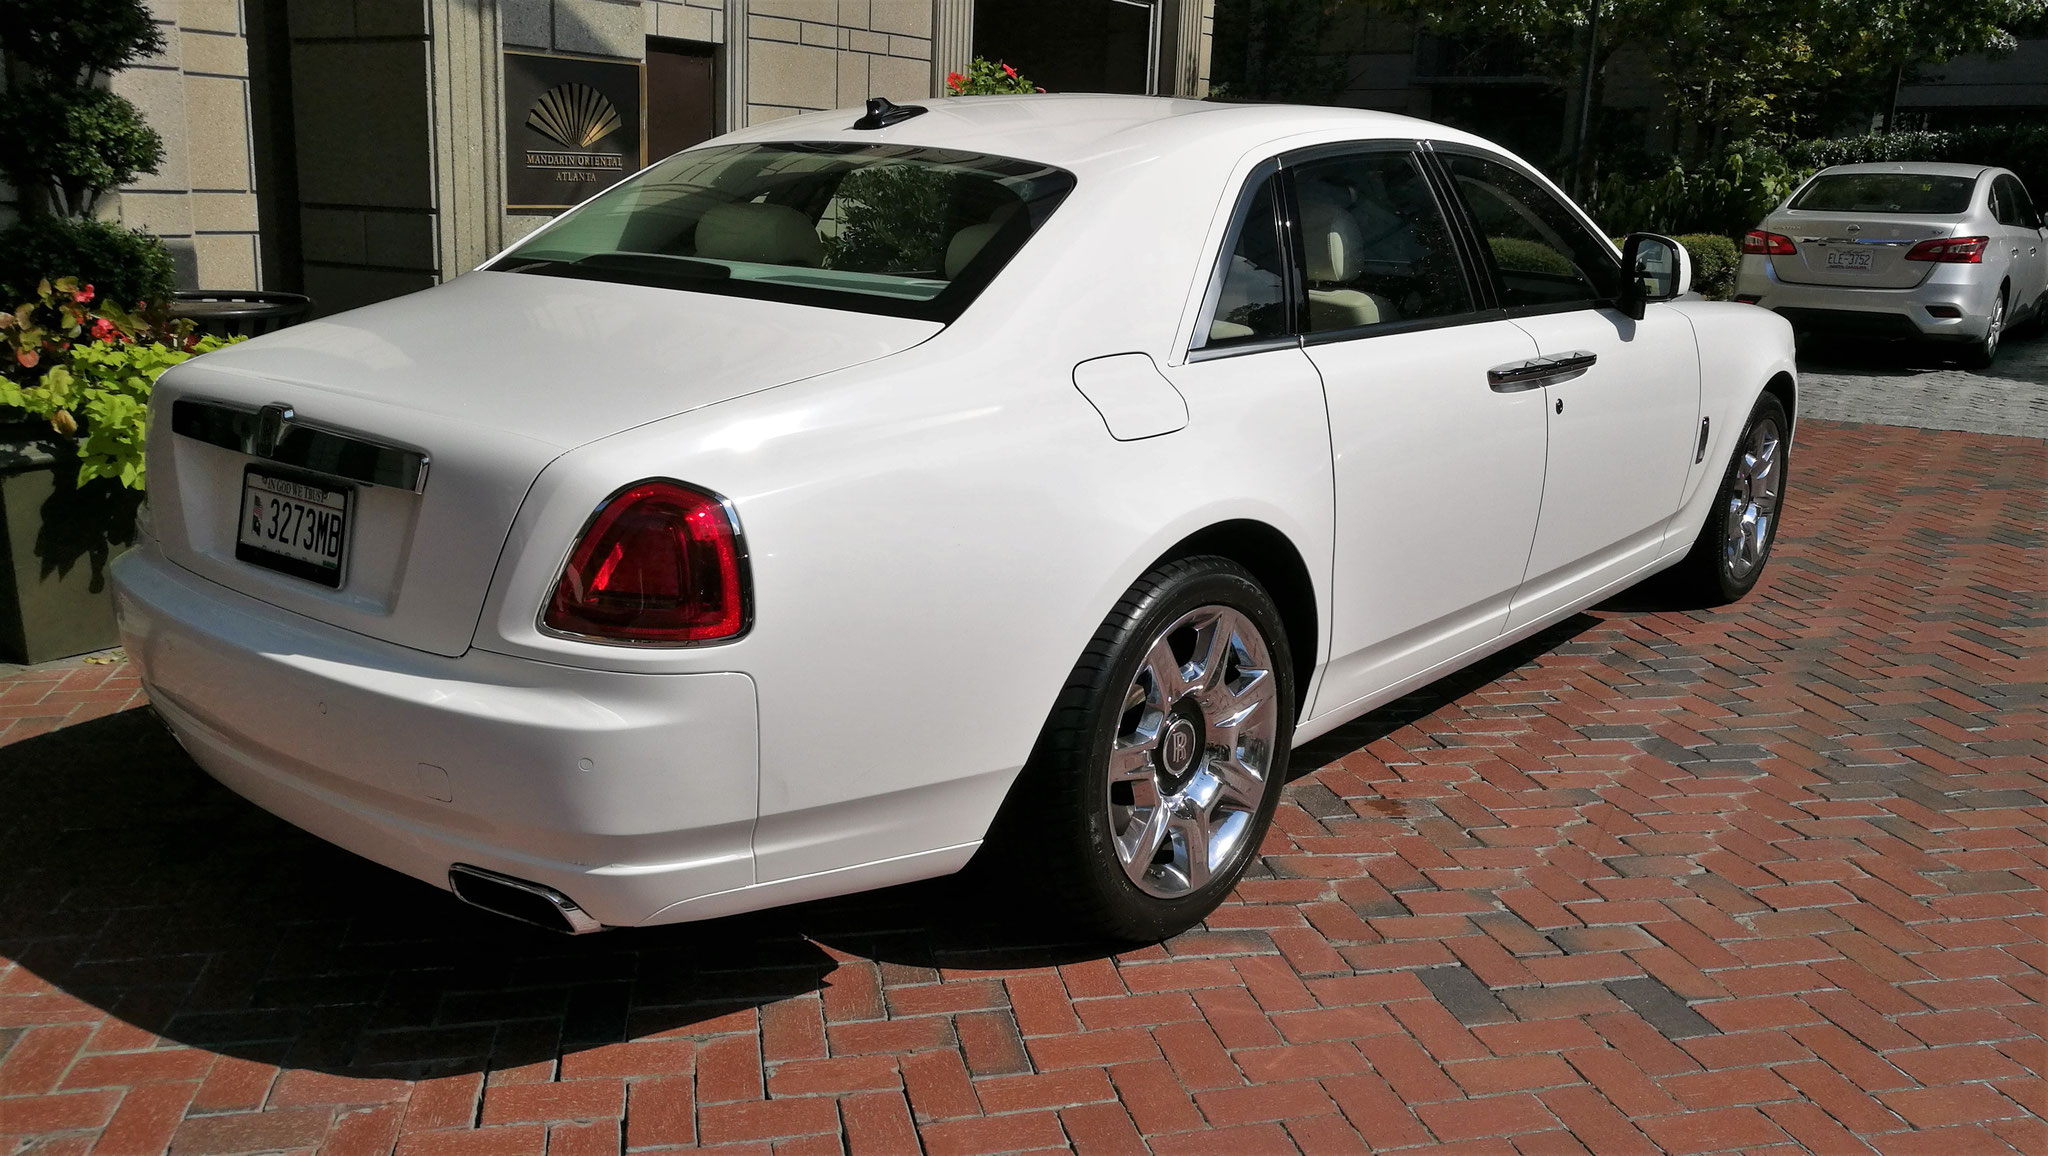 Rolls Royce Ghost Series II - 3273MB (USA)